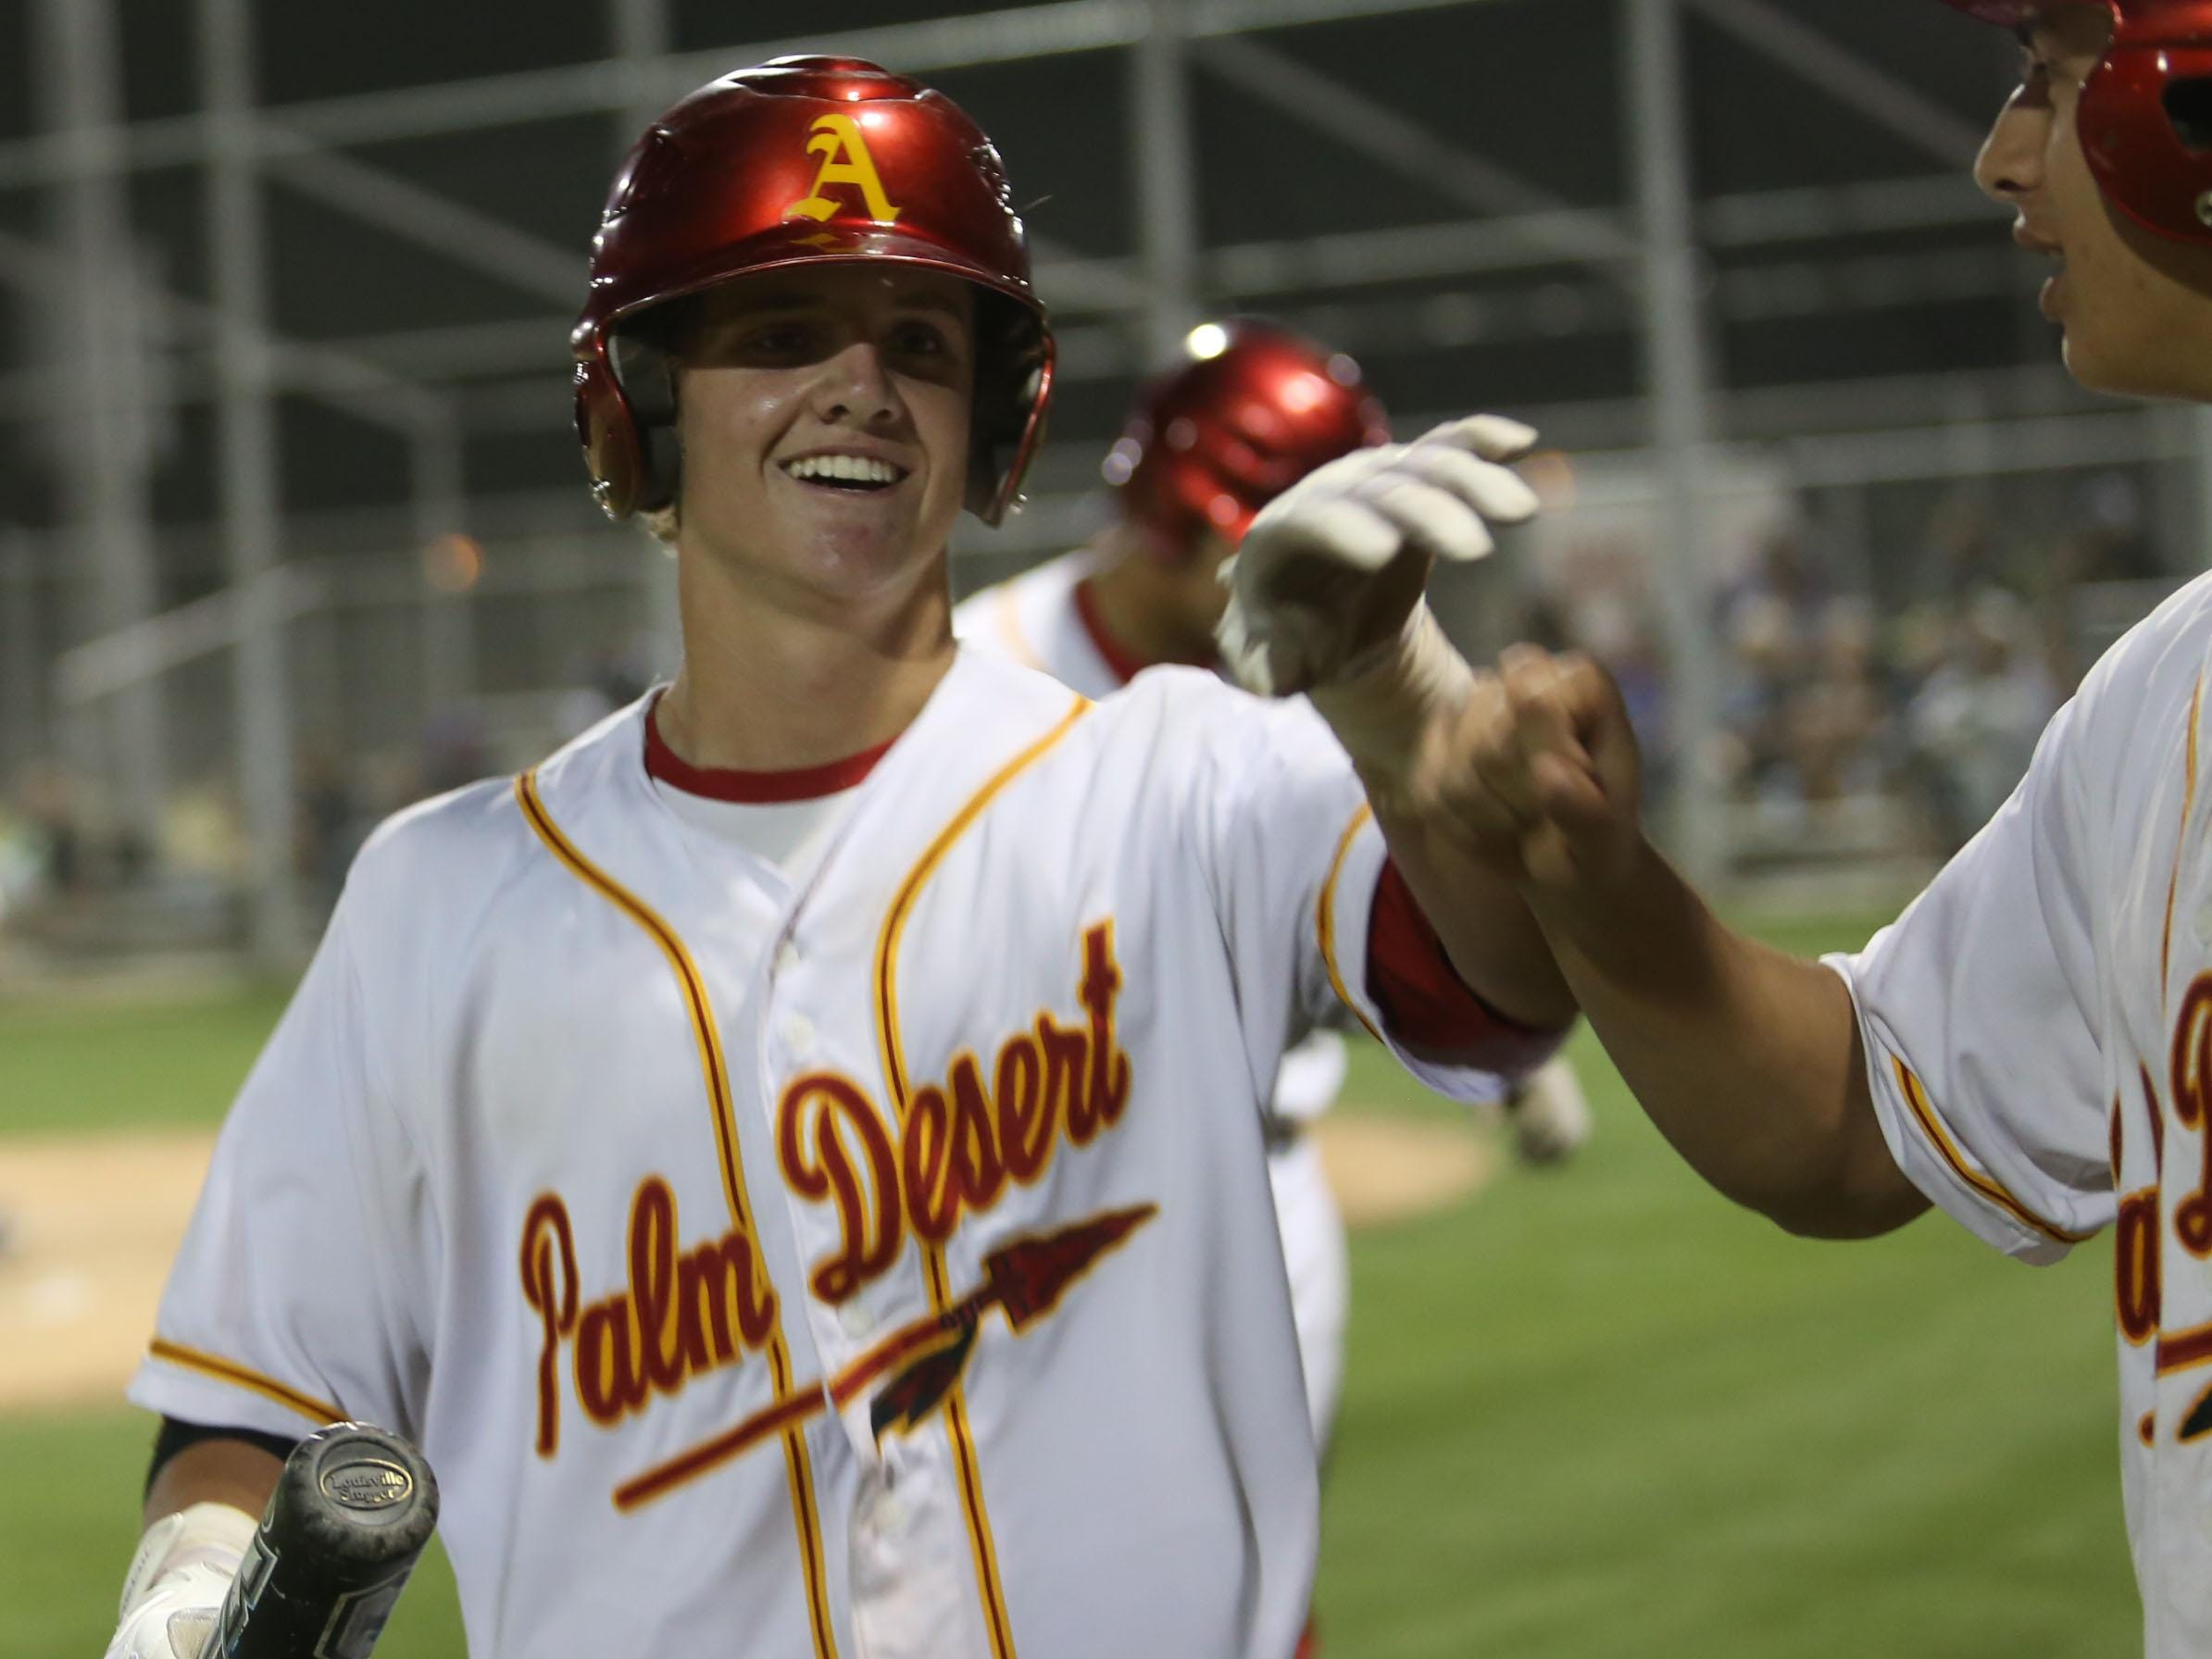 Palm Desert grad Travis Moniot may be selected in next week's MLB First-Year Player Draft. He's committed to play at the University of Oregon, but could have to decide between at least three years of college or heading straight to the minor leagues.